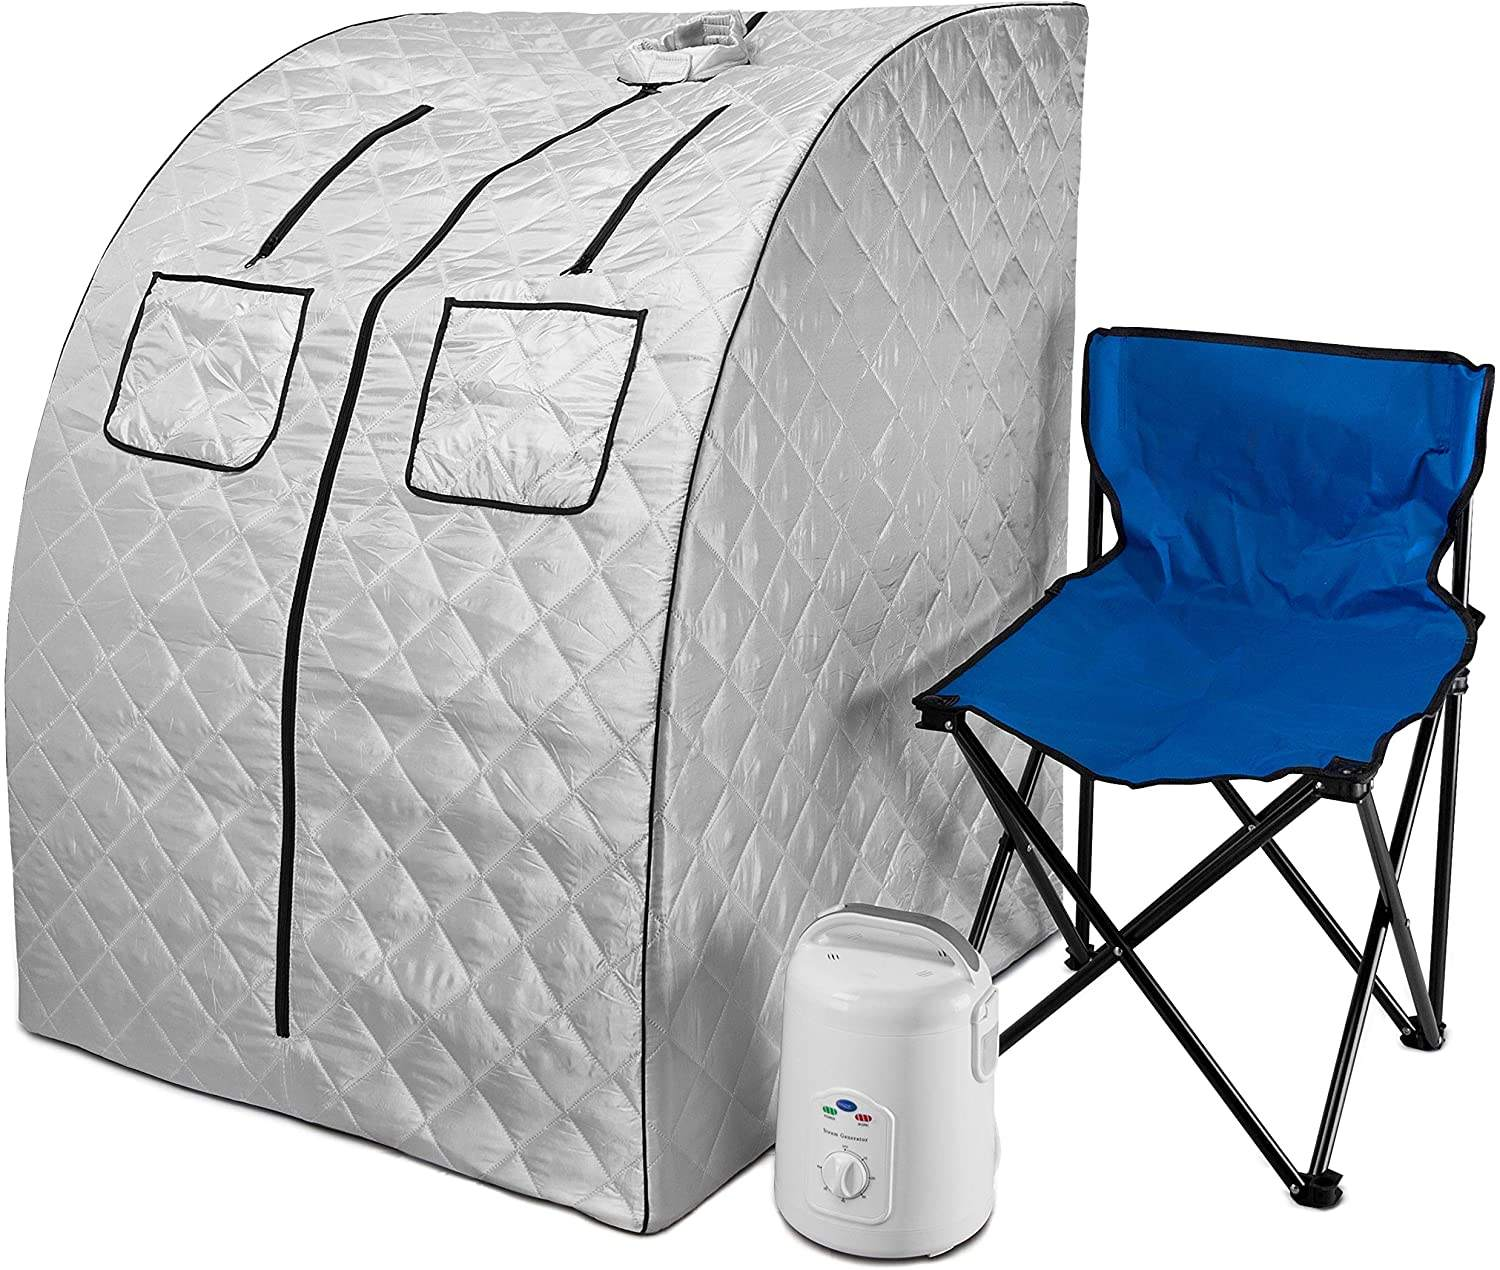 Portable sauna blanket steamer tent 1 person mini home use dry sauna spa far infrared sauna room for sale